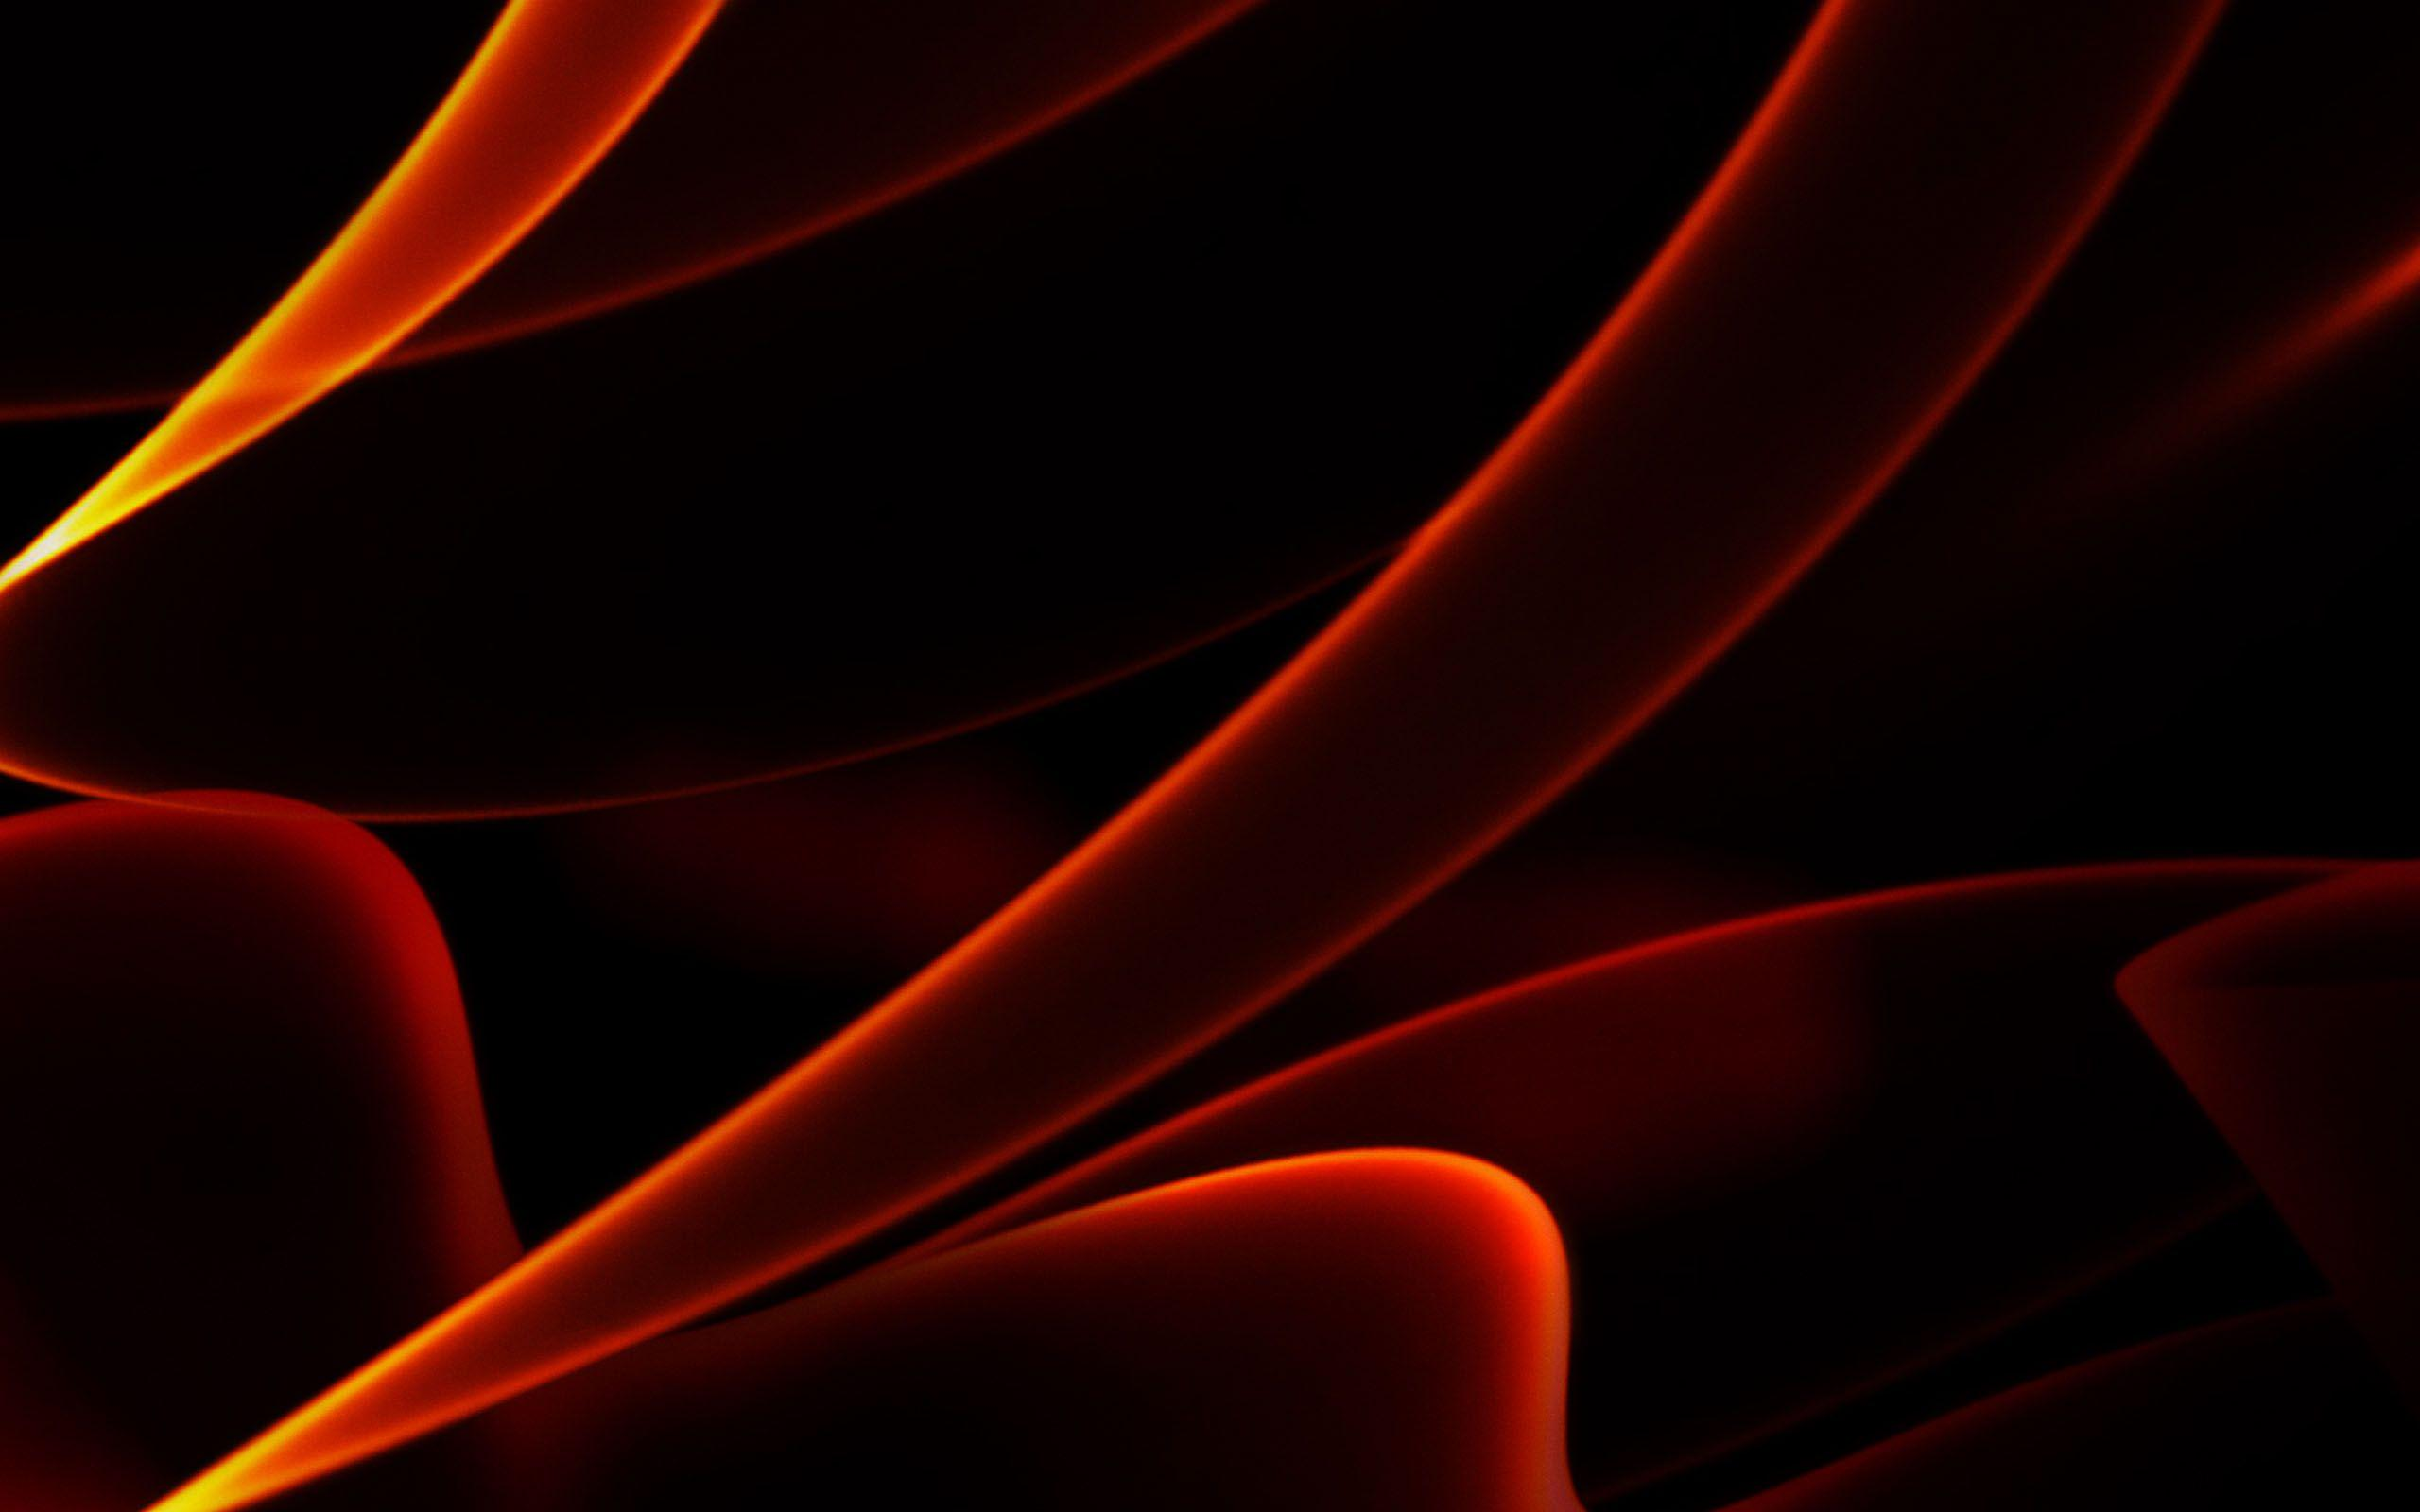 Wallpapers For > Orange And Black Abstract Backgrounds